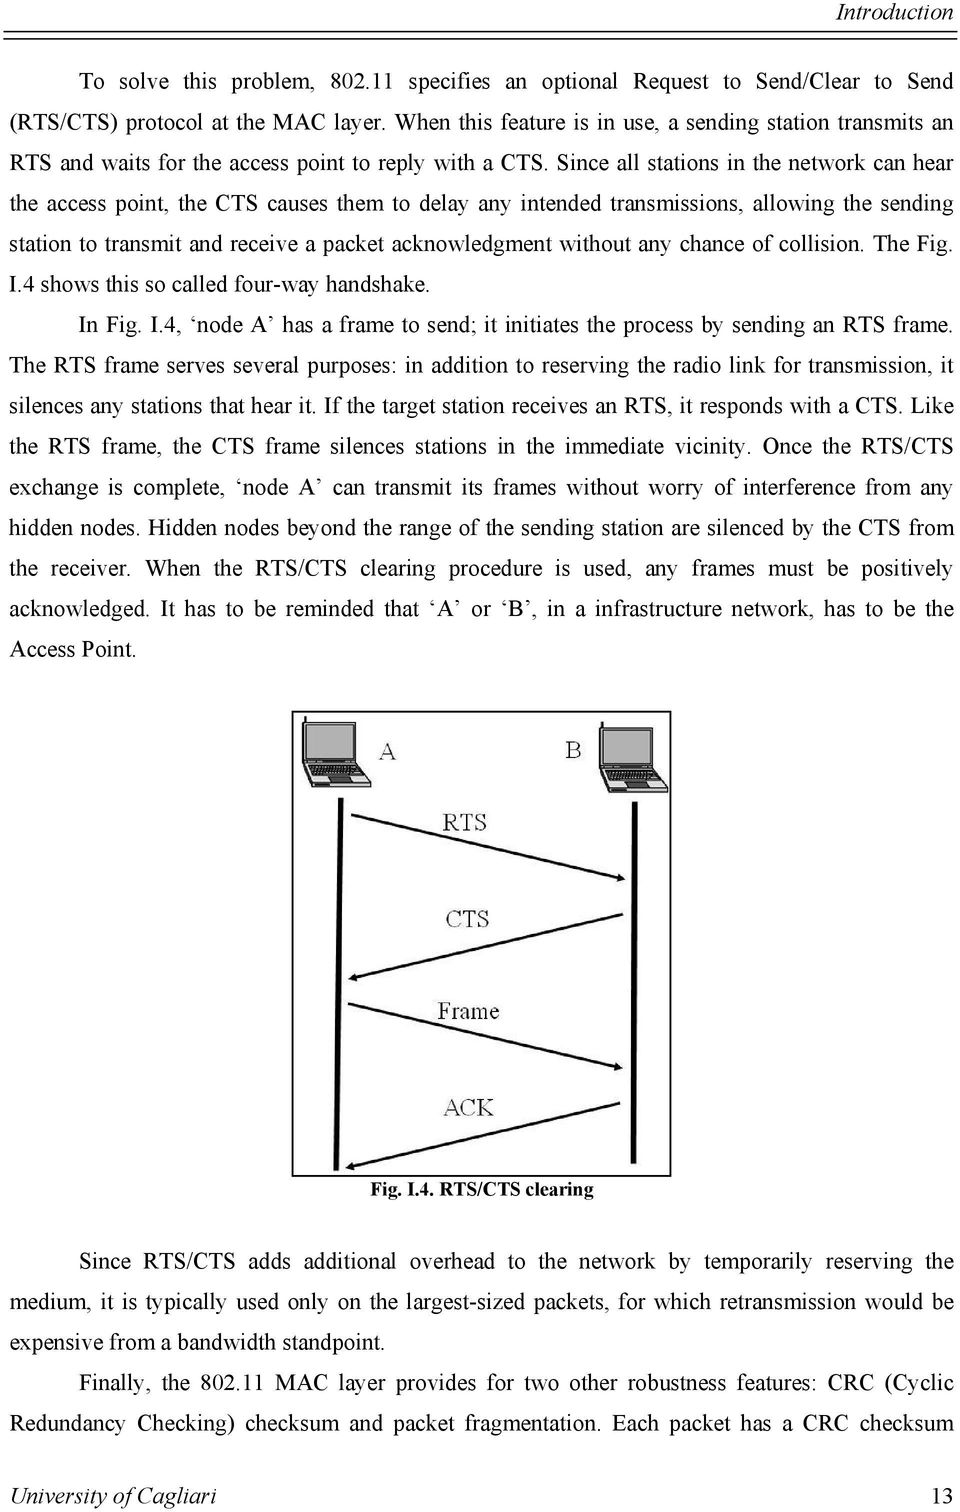 Since all stations in the network can hear the access point, the CTS causes them to delay any intended transmissions, allowing the sending station to transmit and receive a packet acknowledgment